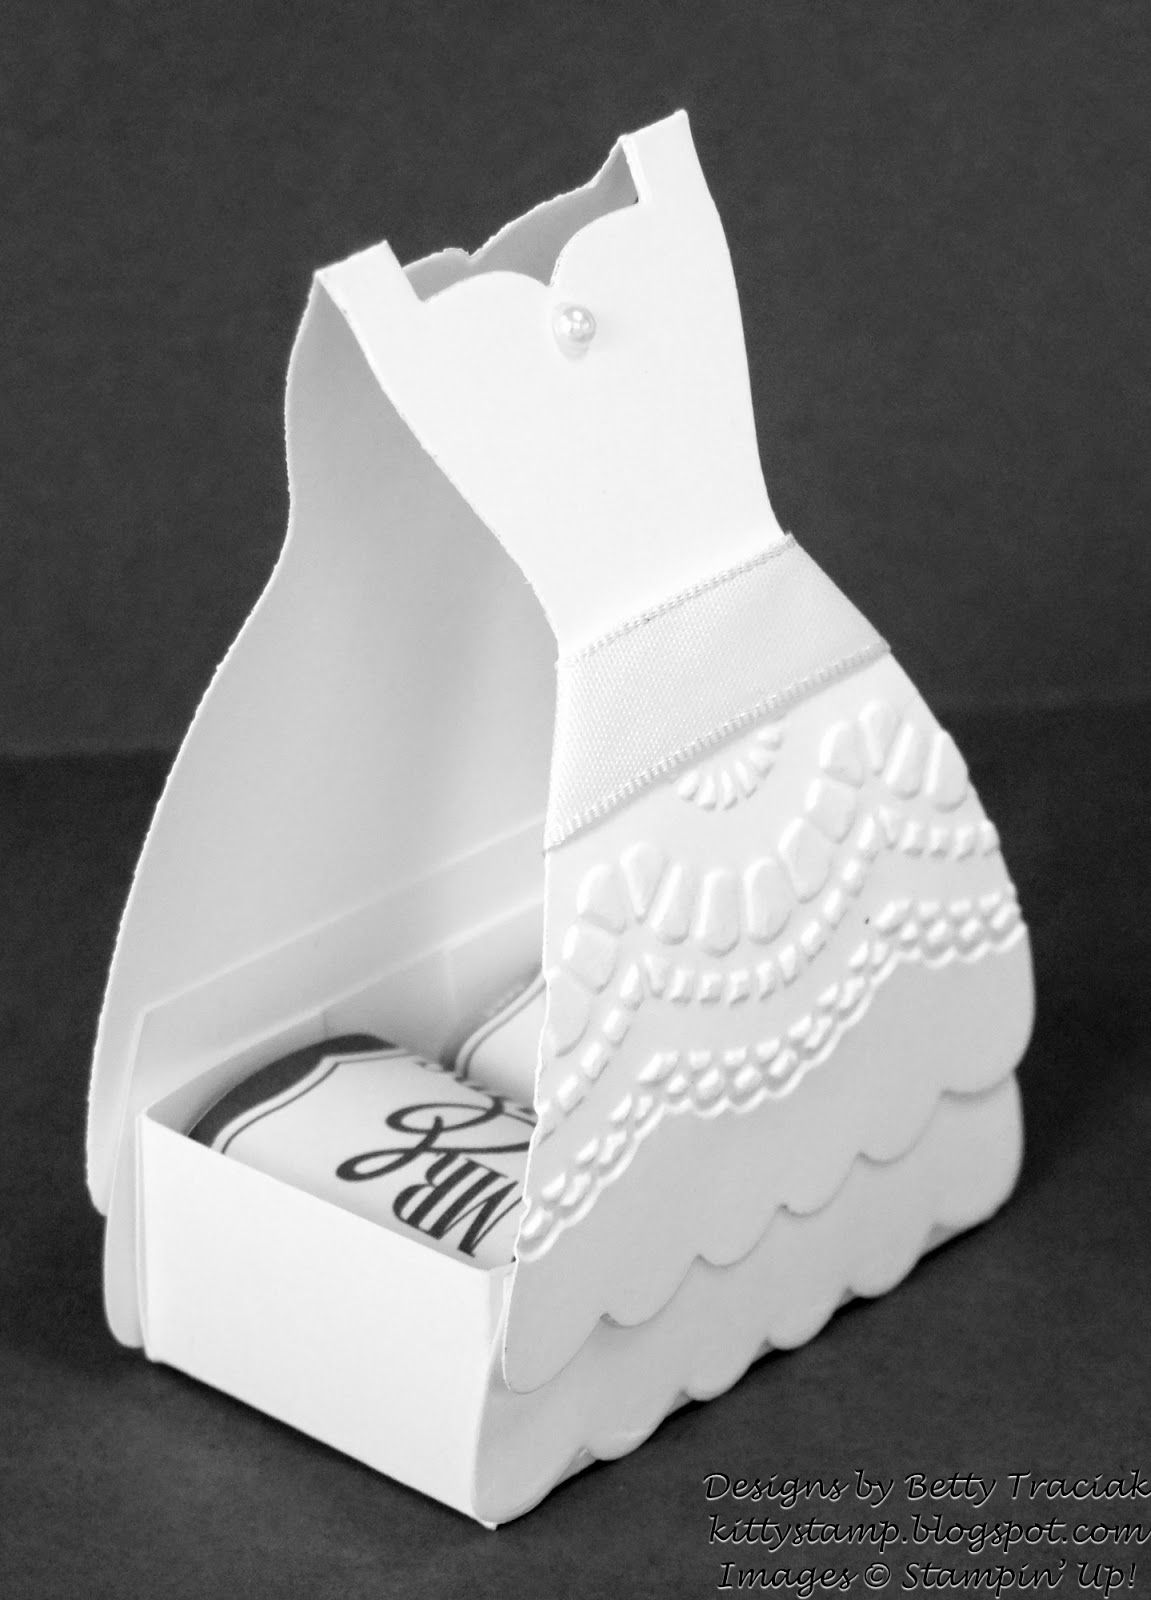 Kitty Stamp: Dress Up Bridal Shower Favors | 3D Boxes, Bags, Gifts ...